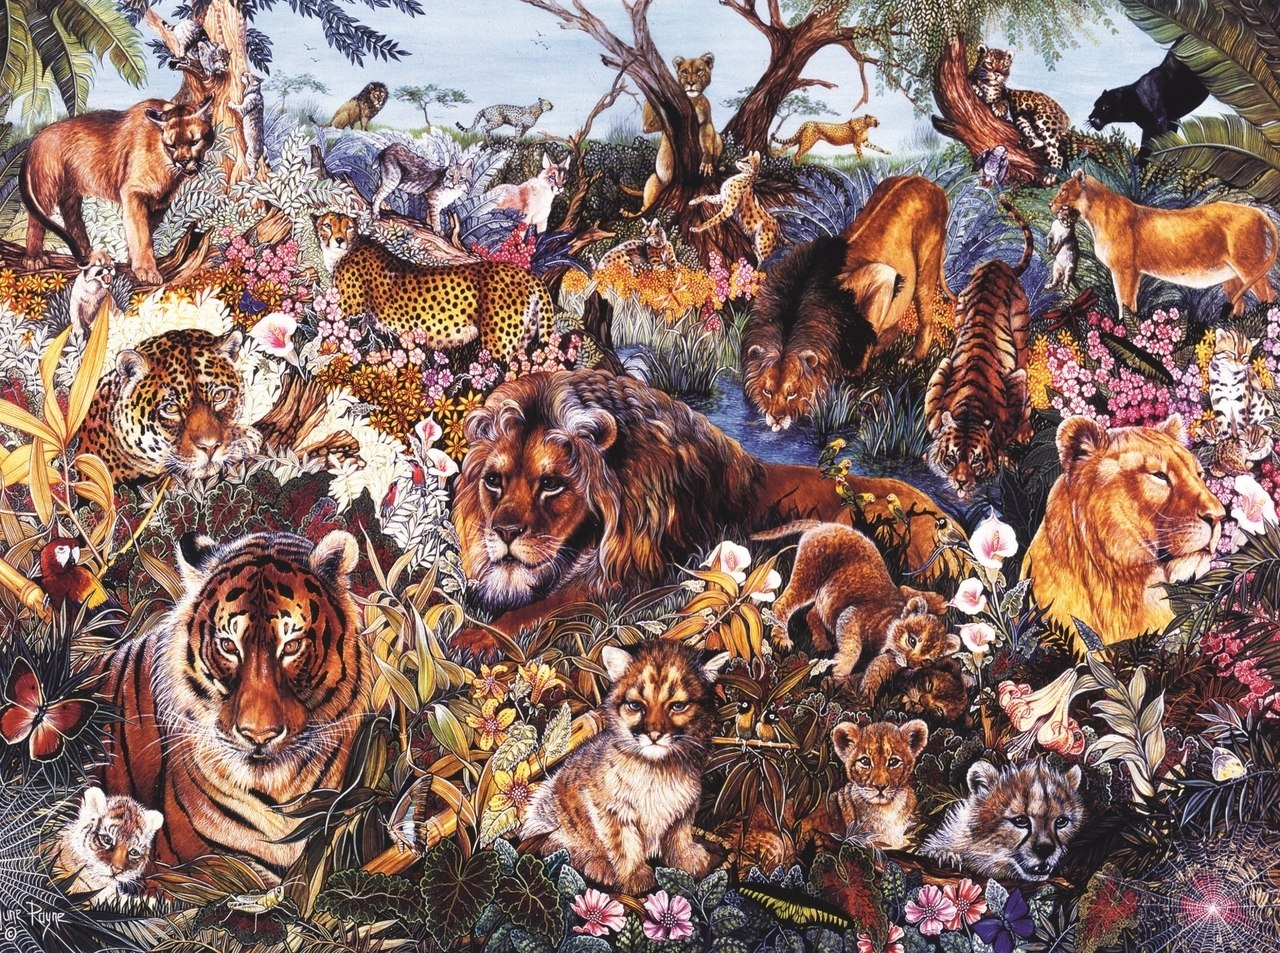 Animal Fantasia - 1000pc Jigsaw Puzzle By Sunsout  			  					NEW